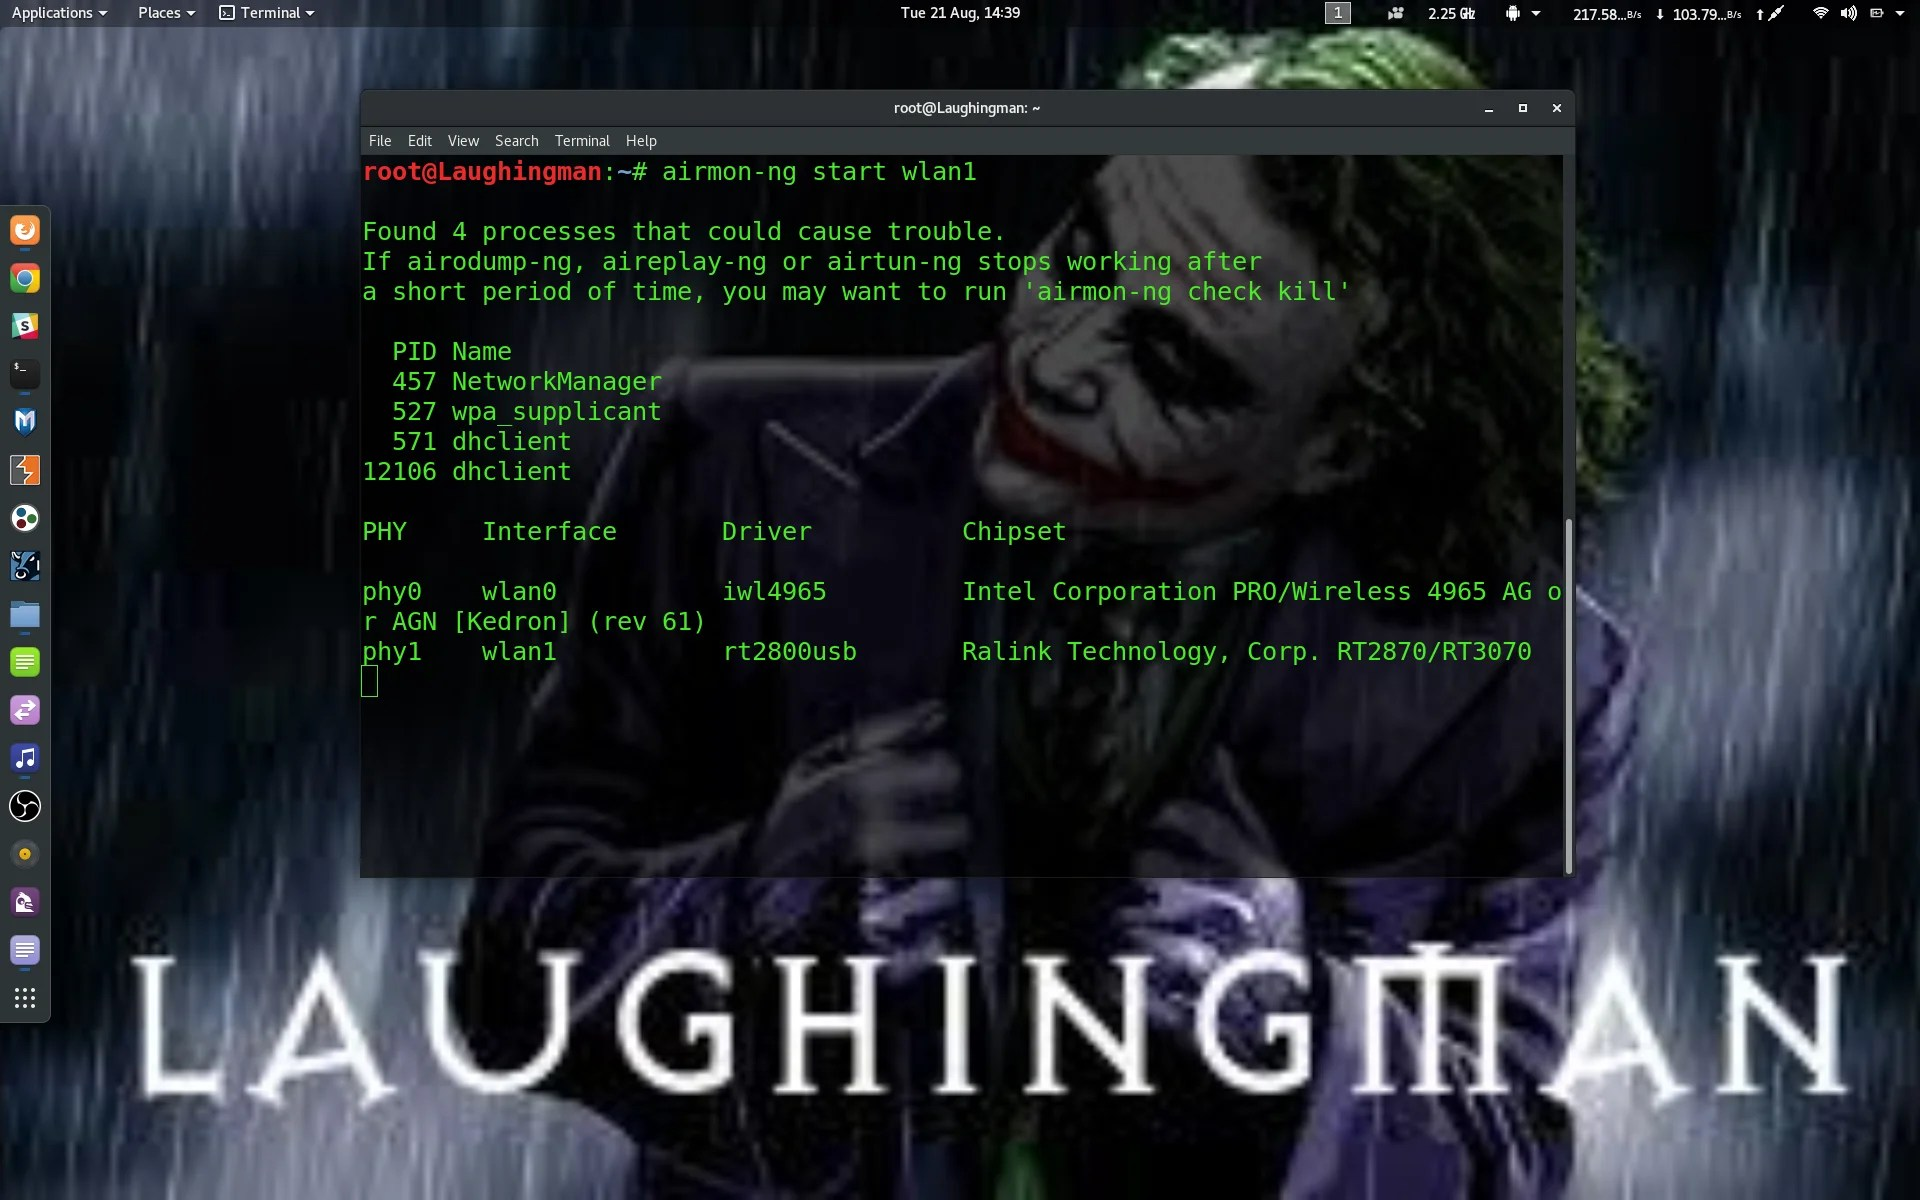 Cracking Wireless Router Using Aircrack-ng with crunch